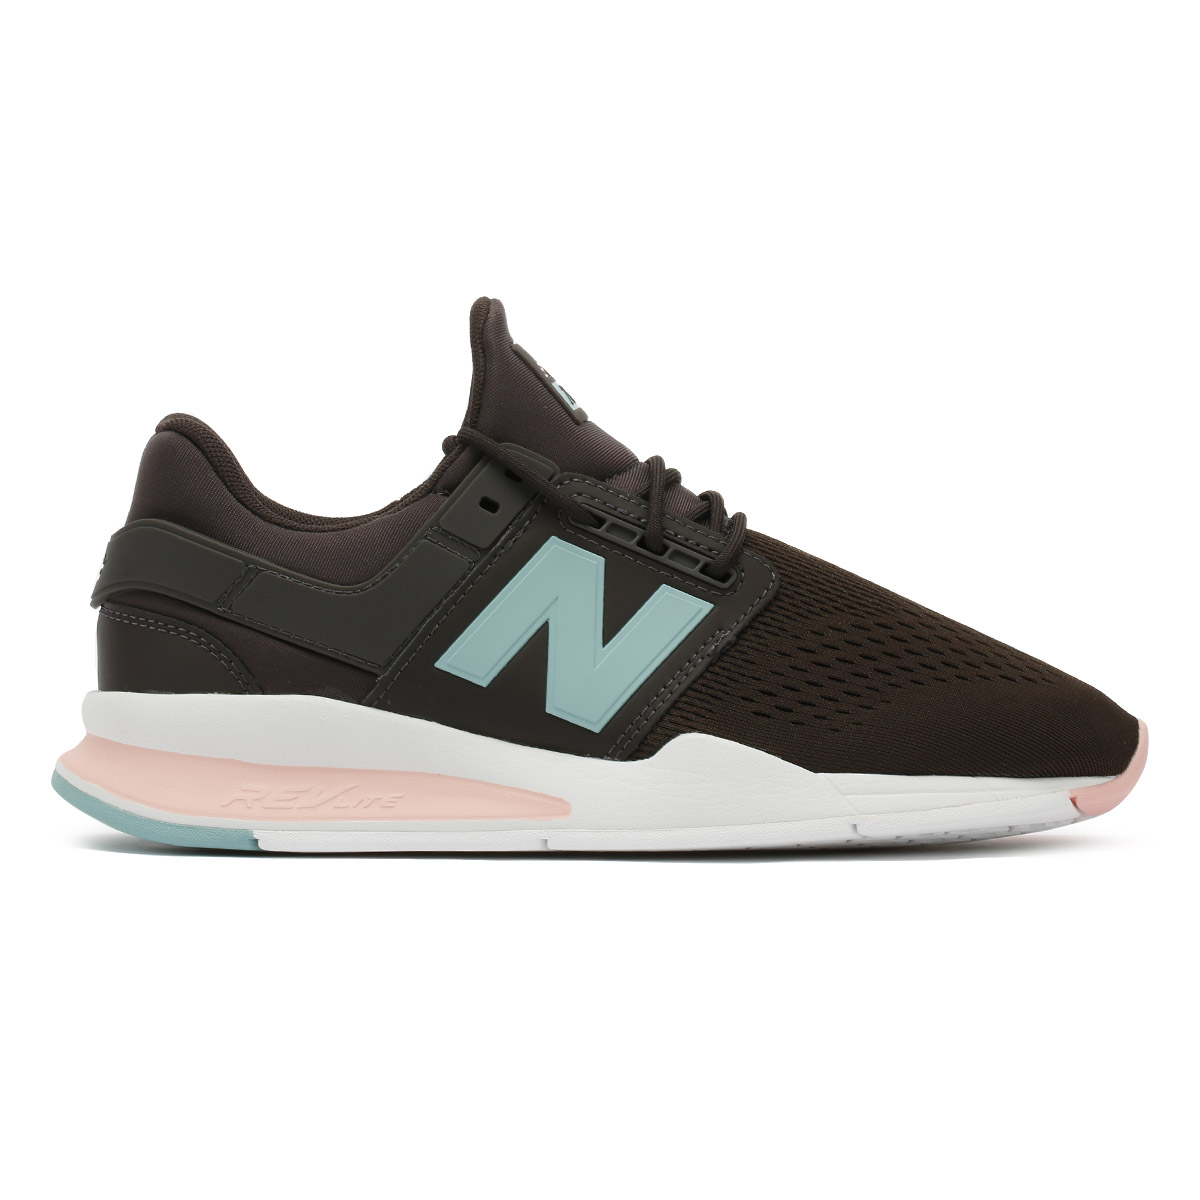 New Balance Womens Trainers Bmericano Grey & Himalayan Pink 247 Sport Shoes